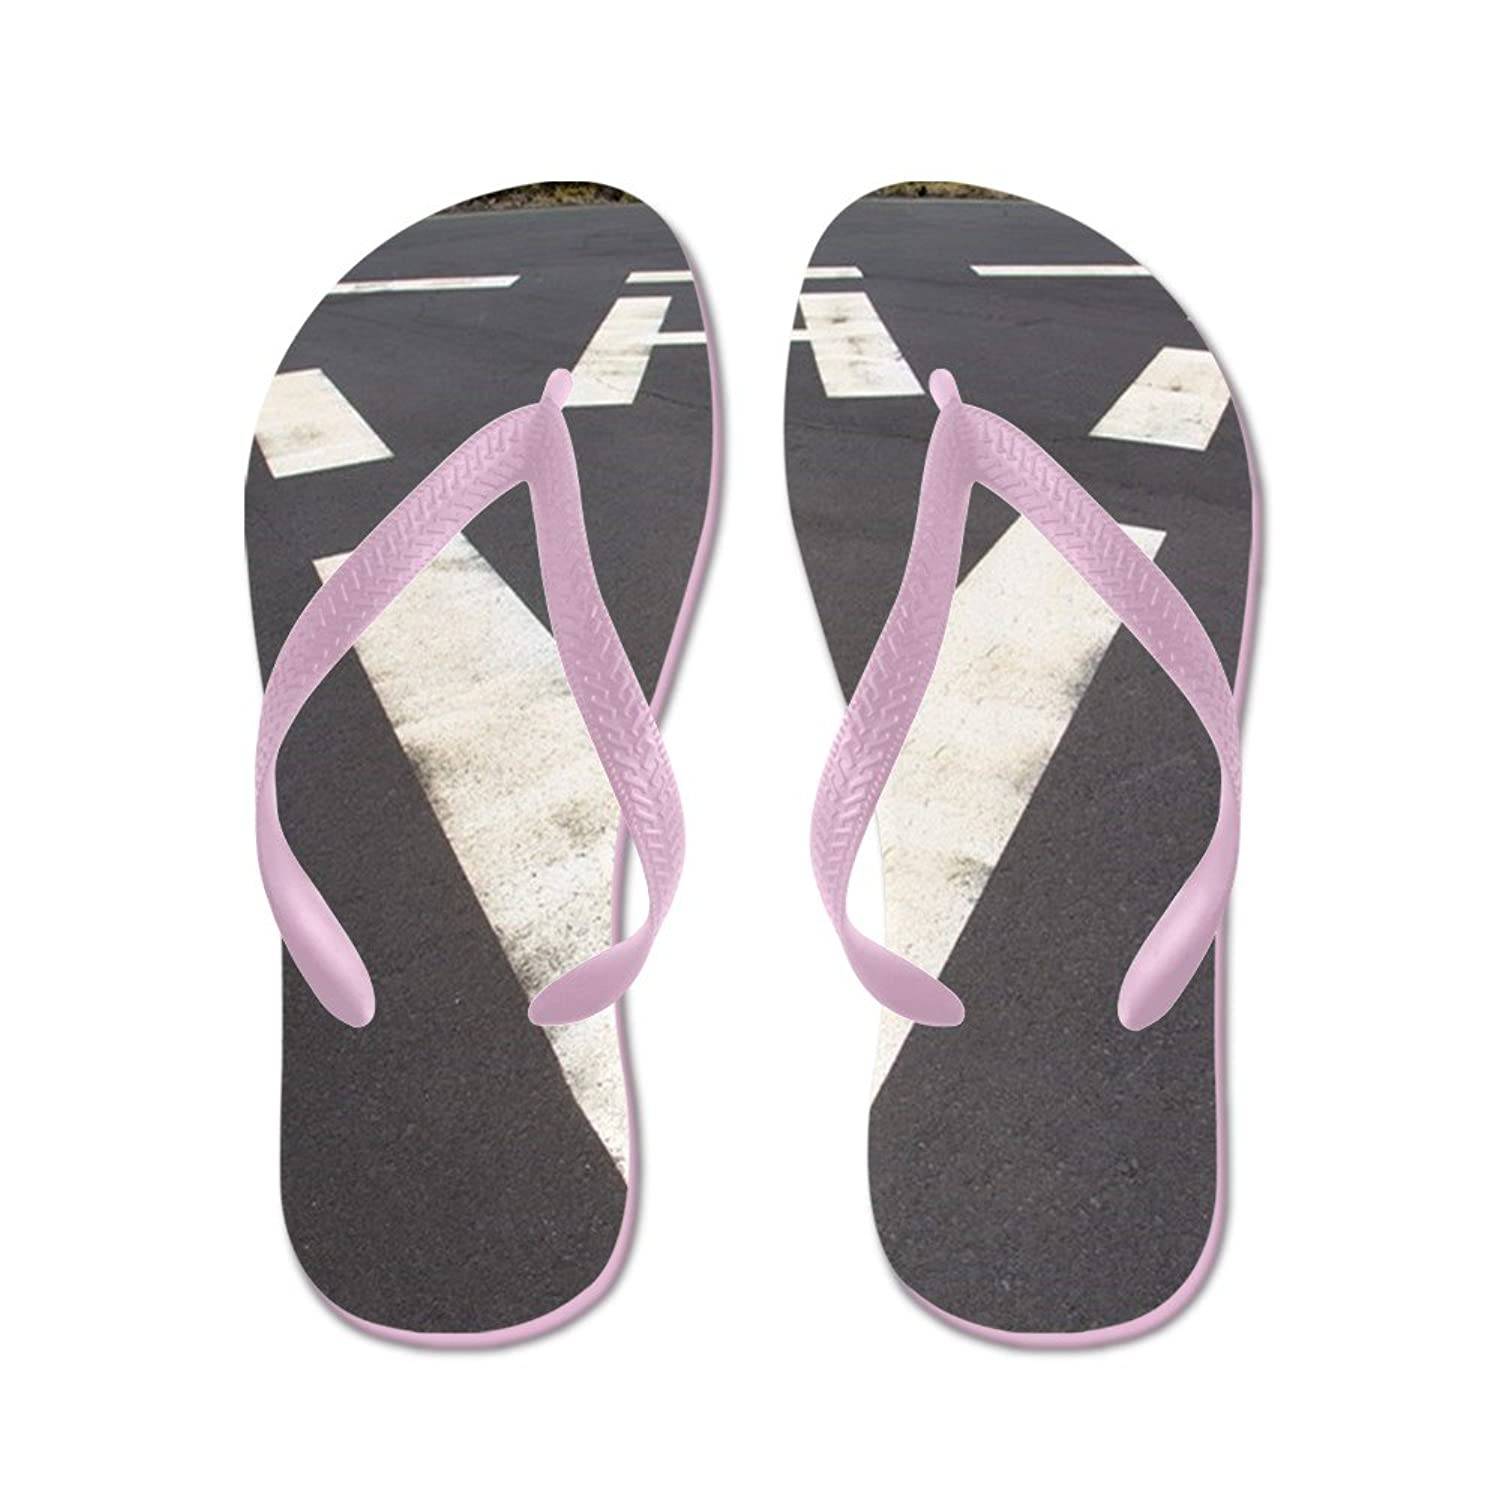 60f291a96c53 CafePress Heliport Triangle White Soil Painted SI - Flip Flops ...